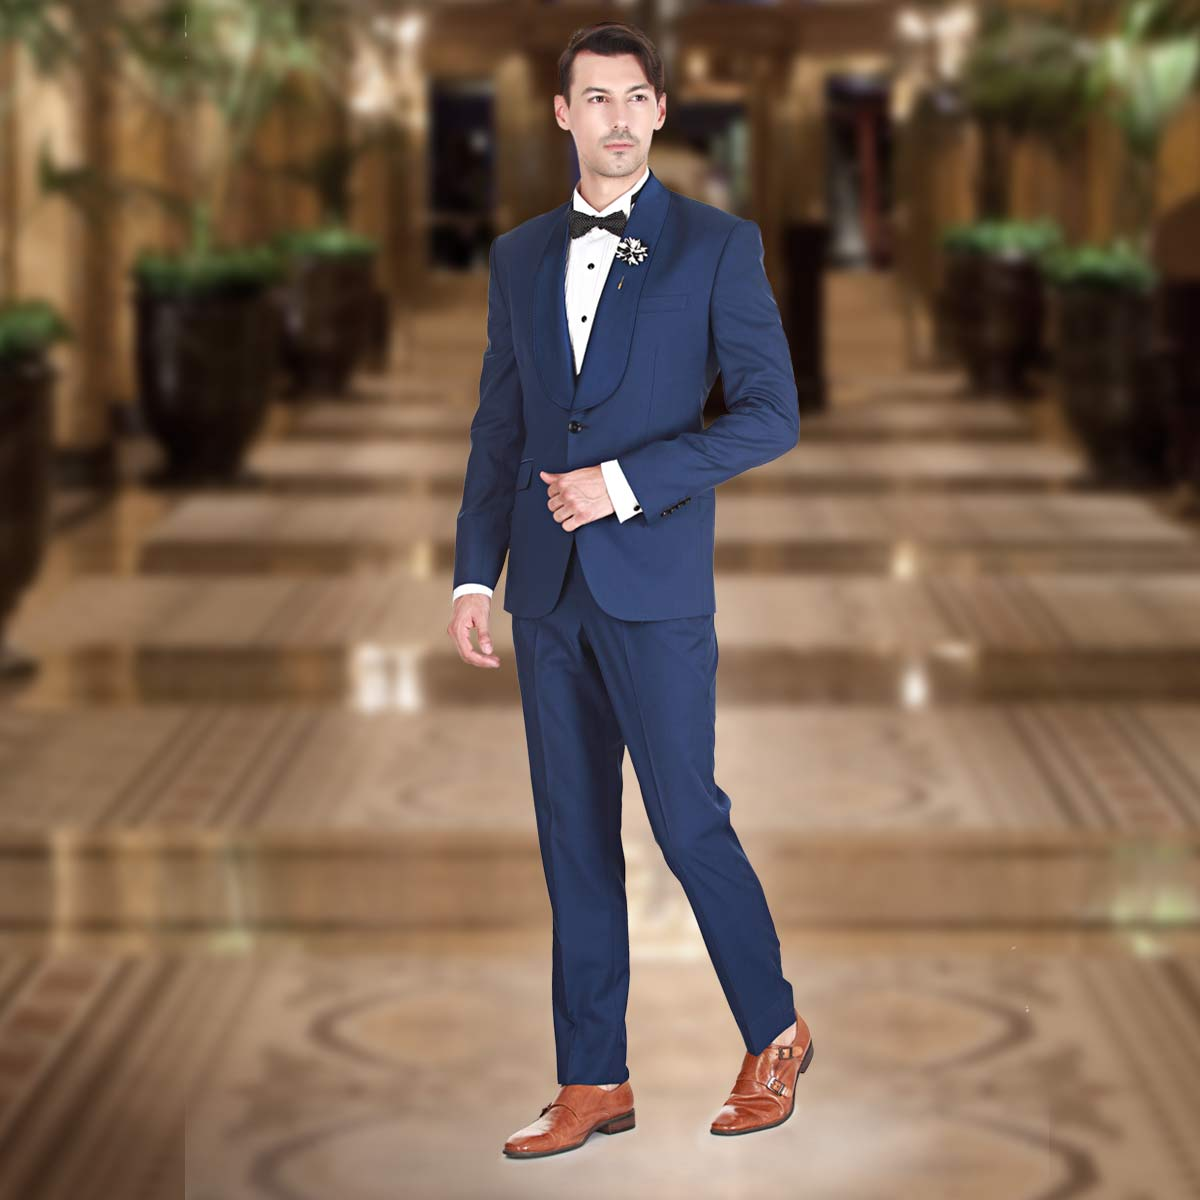 Blue Suit - Premium Bespoke Suits Online. Men's Clothing Stores